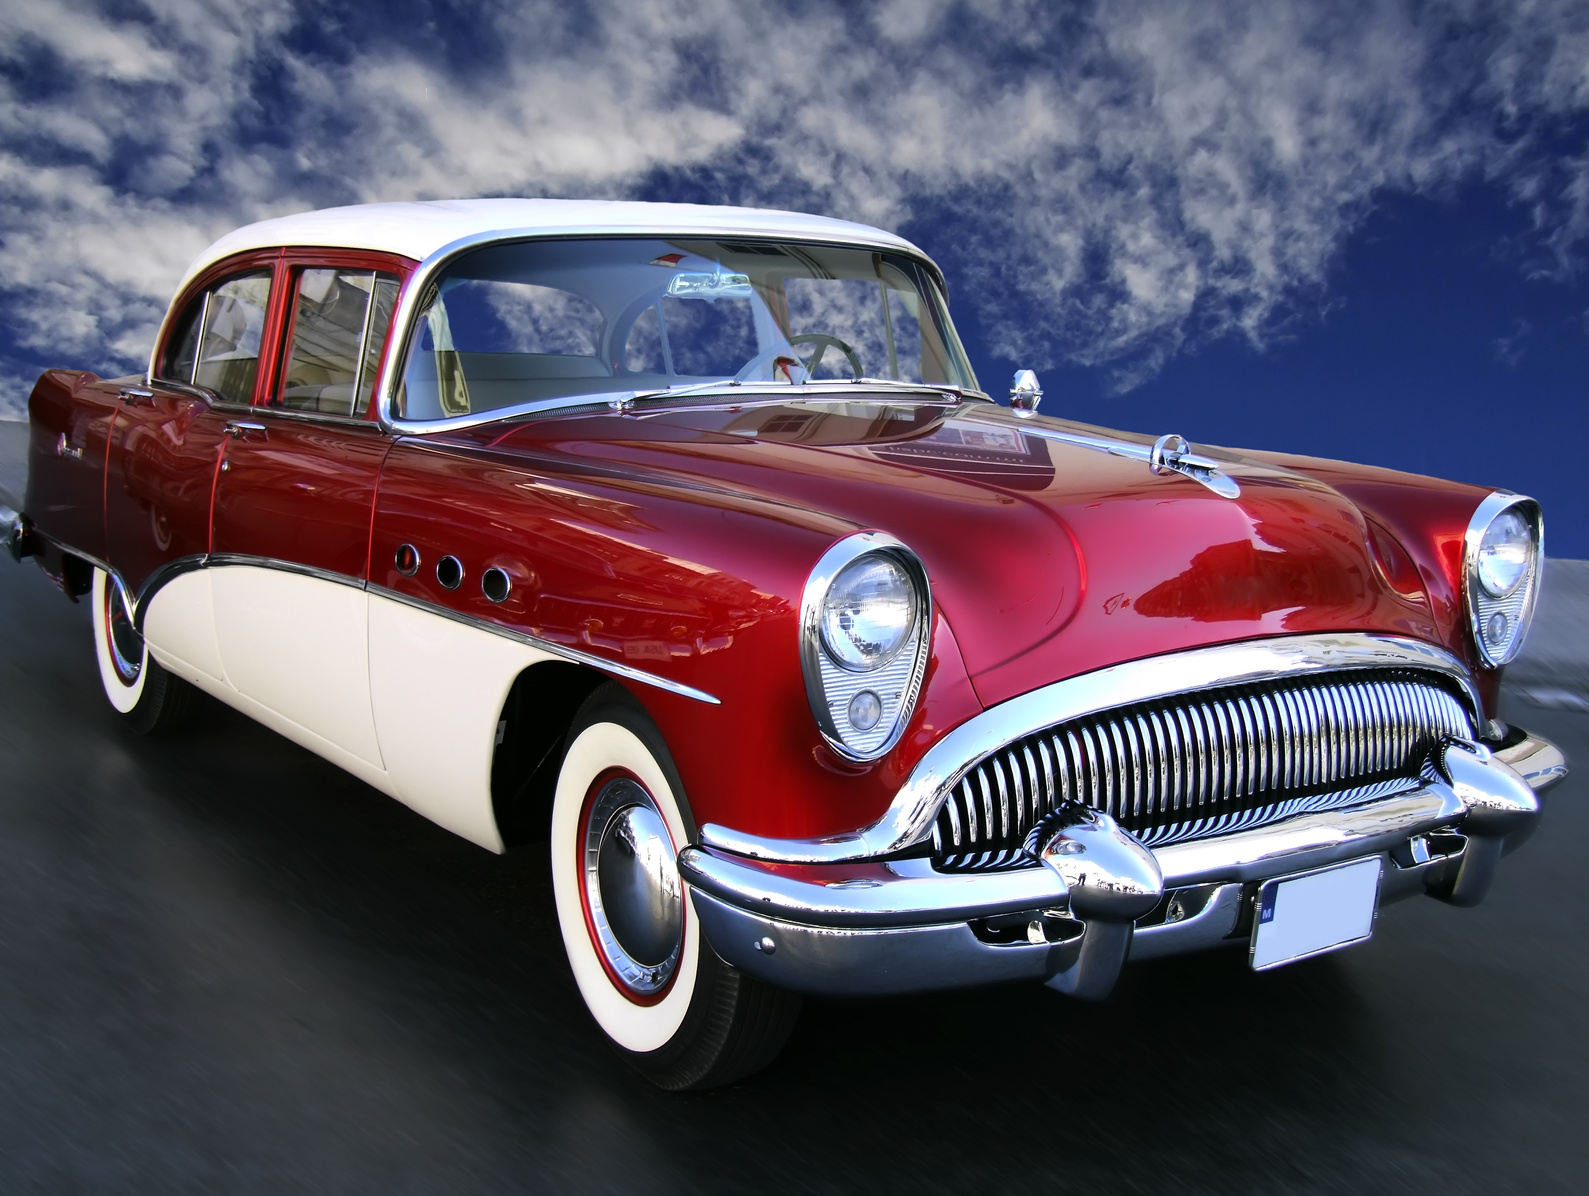 Types Of Classic Cars And Insurance - My classic car